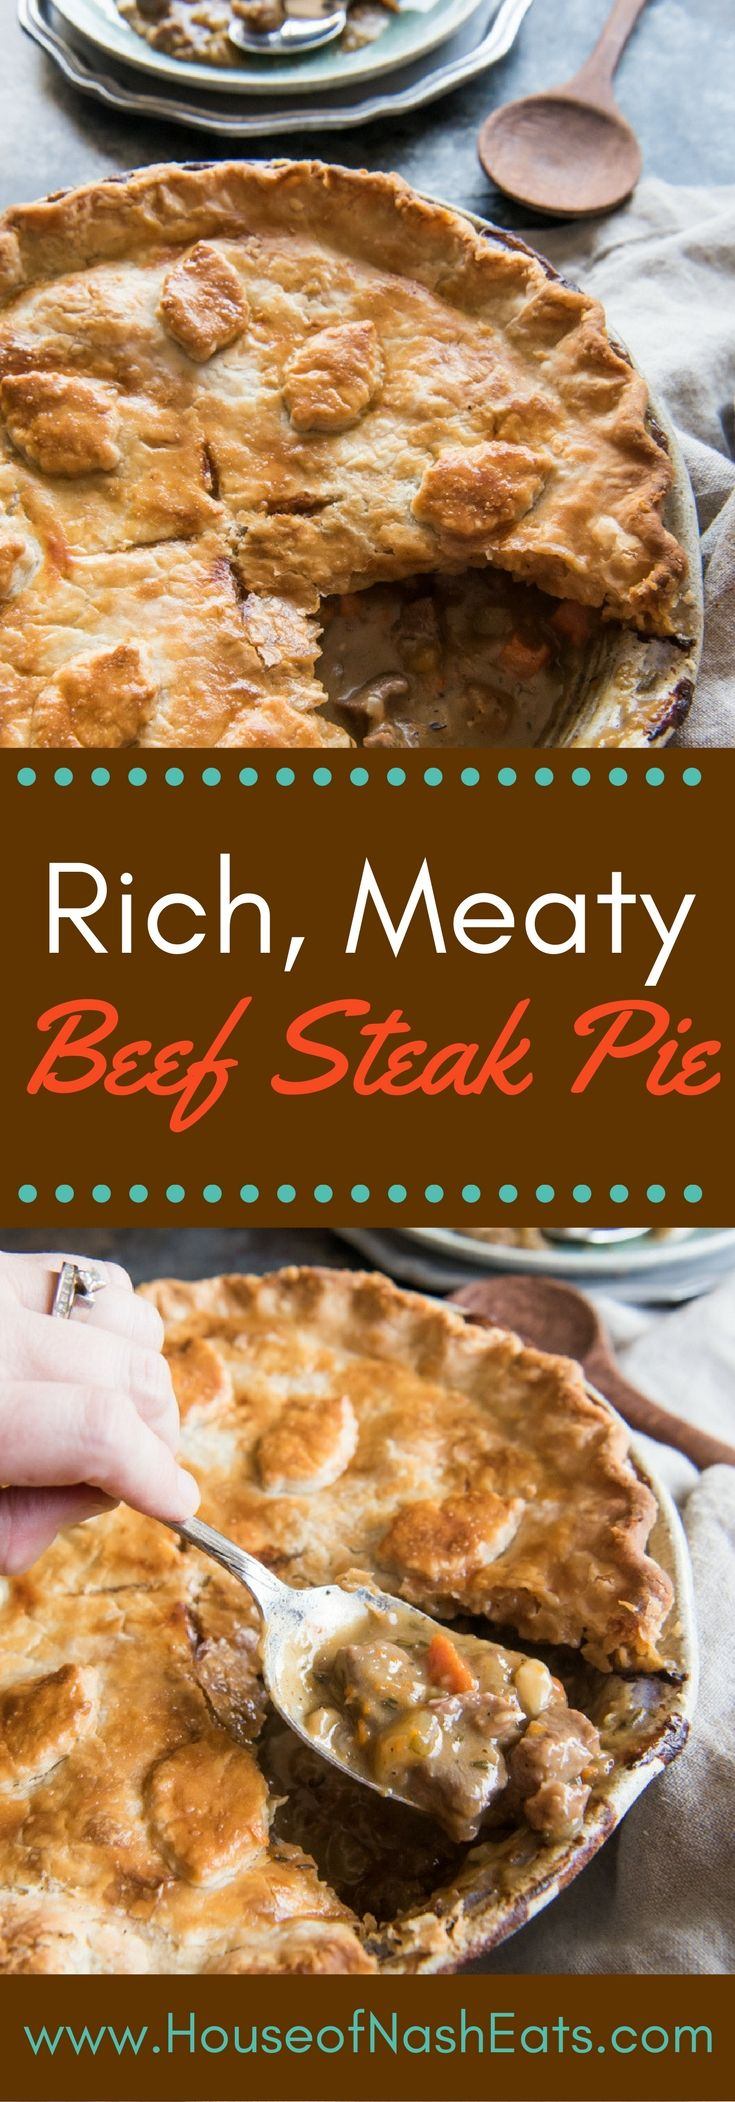 Beef Steak Pie is an old recipe for a rich, meaty steak and mushroom pie recipe that gives a taste of history and is super comforting for cold weather days!